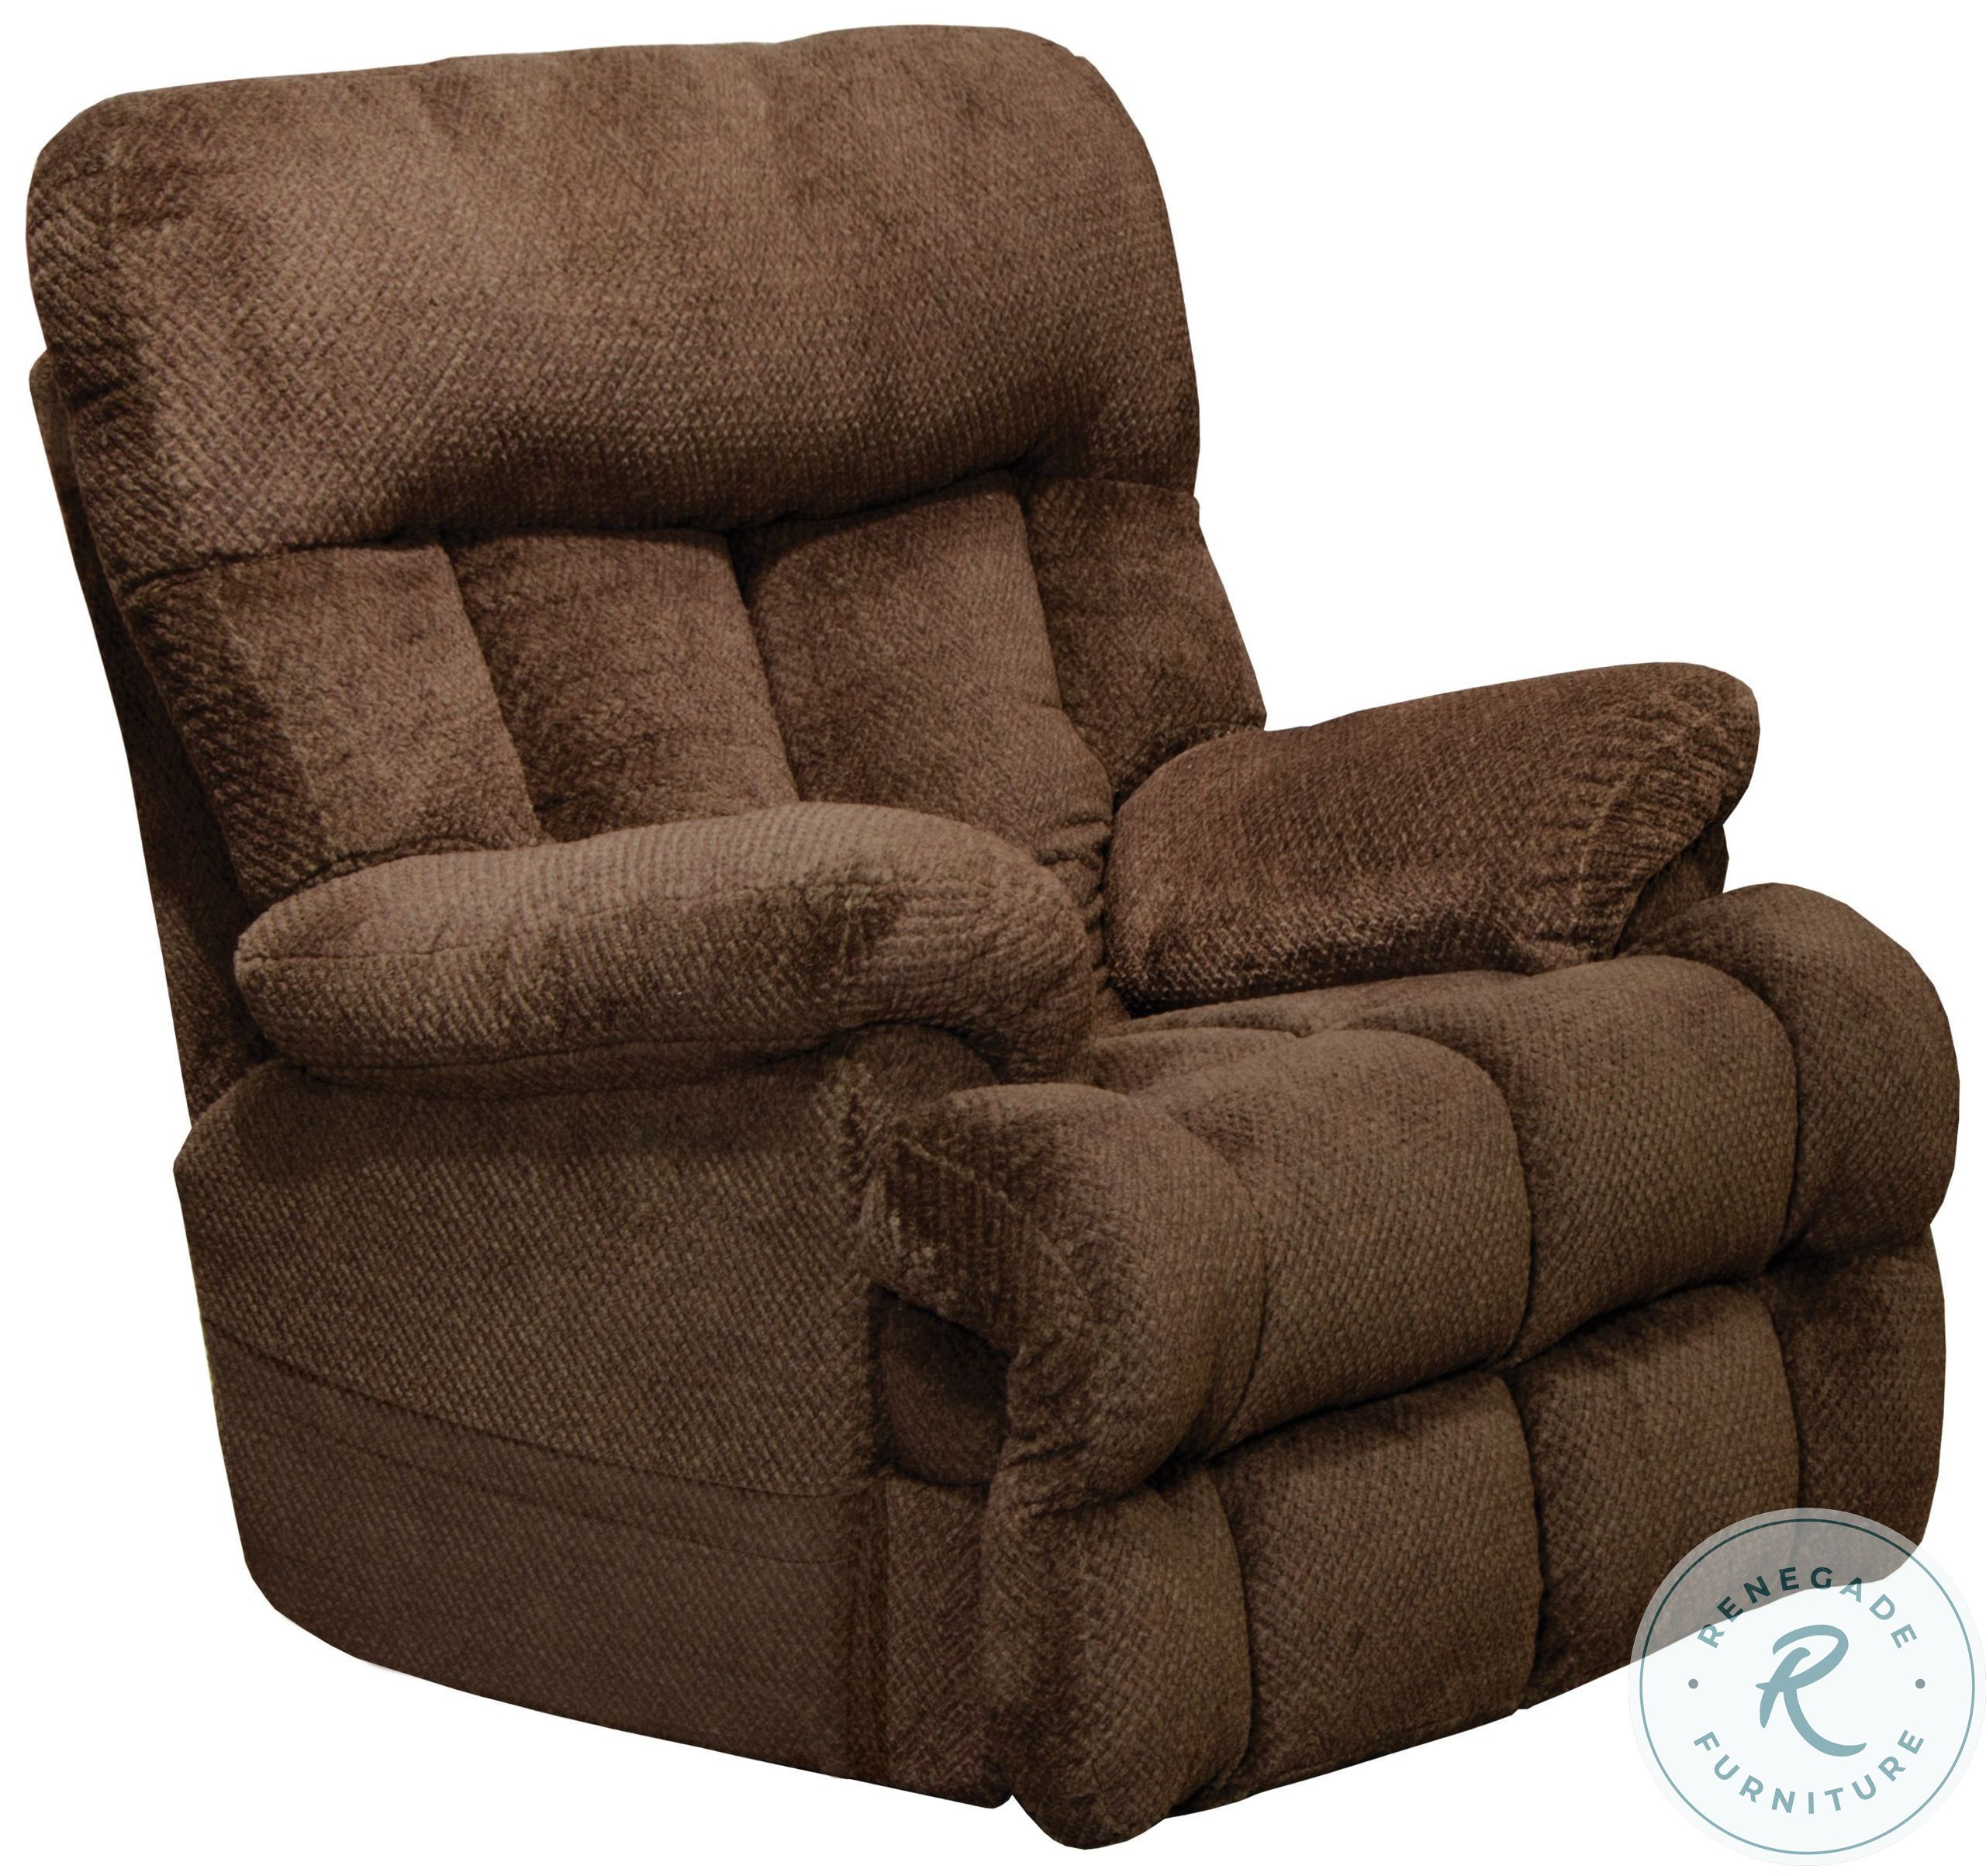 Ludden Cocoa Rocker Recliner From Ashley 8110425 Coleman Furniture